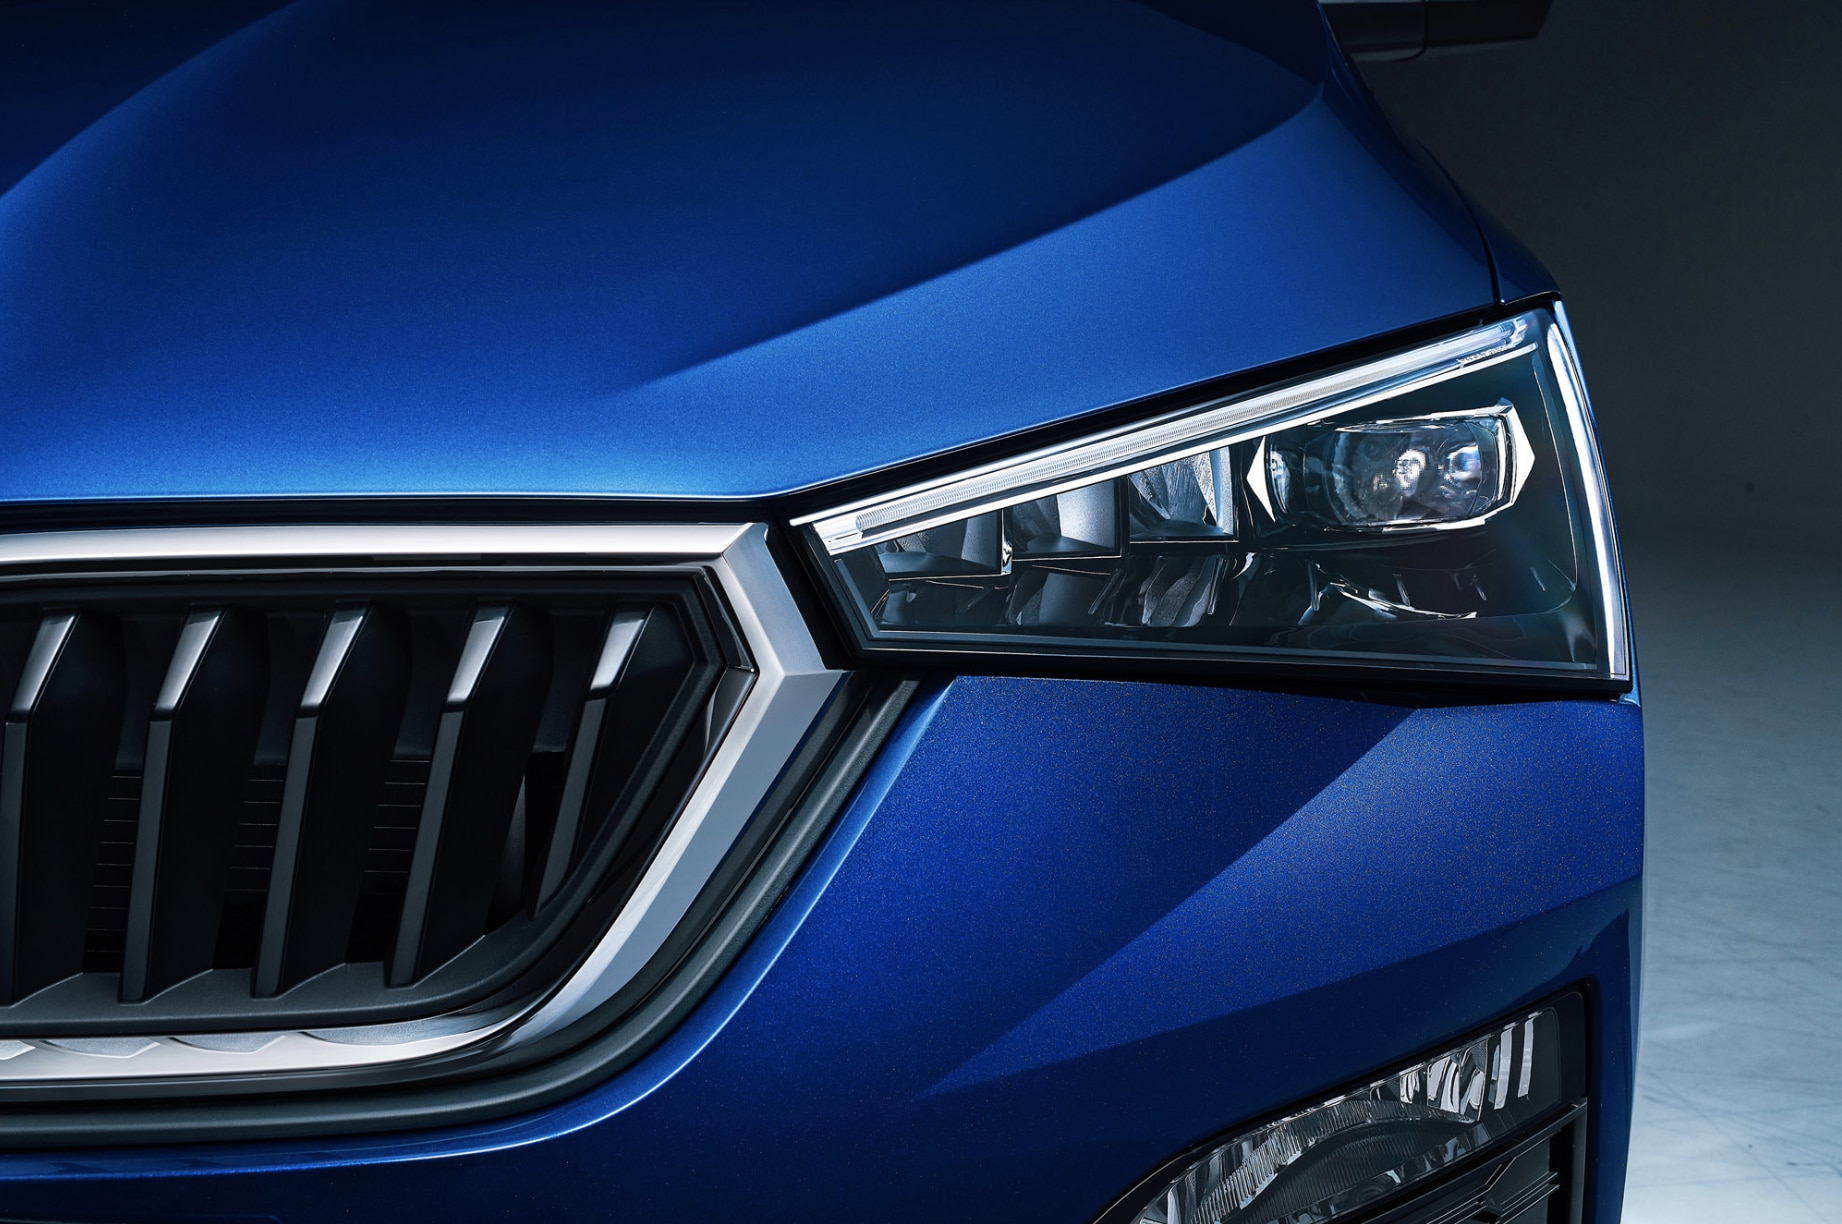 It sports arrow-shaped headlights with built-in LEDs and a hexagonal radiator grill